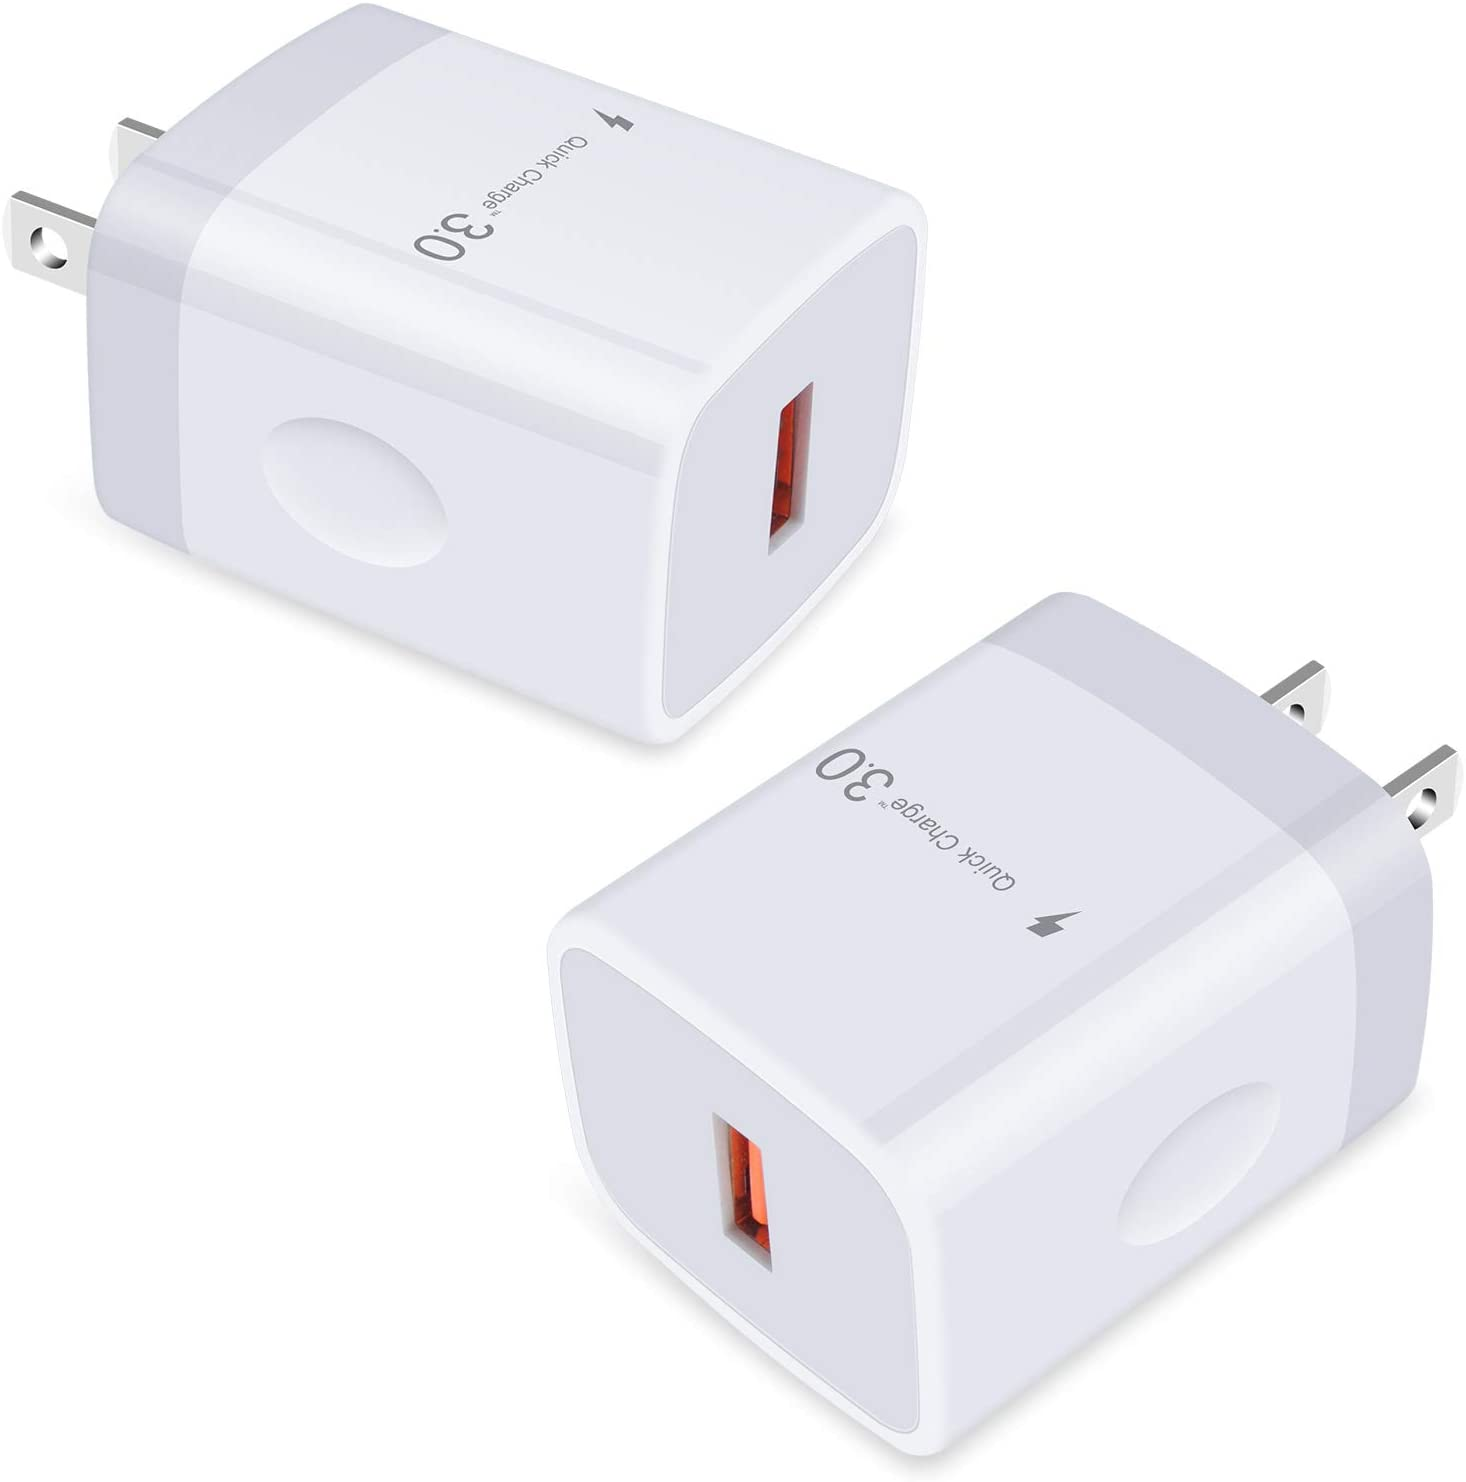 Quick Charge 3.0 USB Charger, GiGreen 2-Pack Fast Charging Wall Plug Charger Adapter Power Block Compatible Samsung Note 20 Ultra, S20 S10+ A10e A11 A20 A50 A70 A51 A71, iPhone, LG, Moto Z4 Z3 Z Force